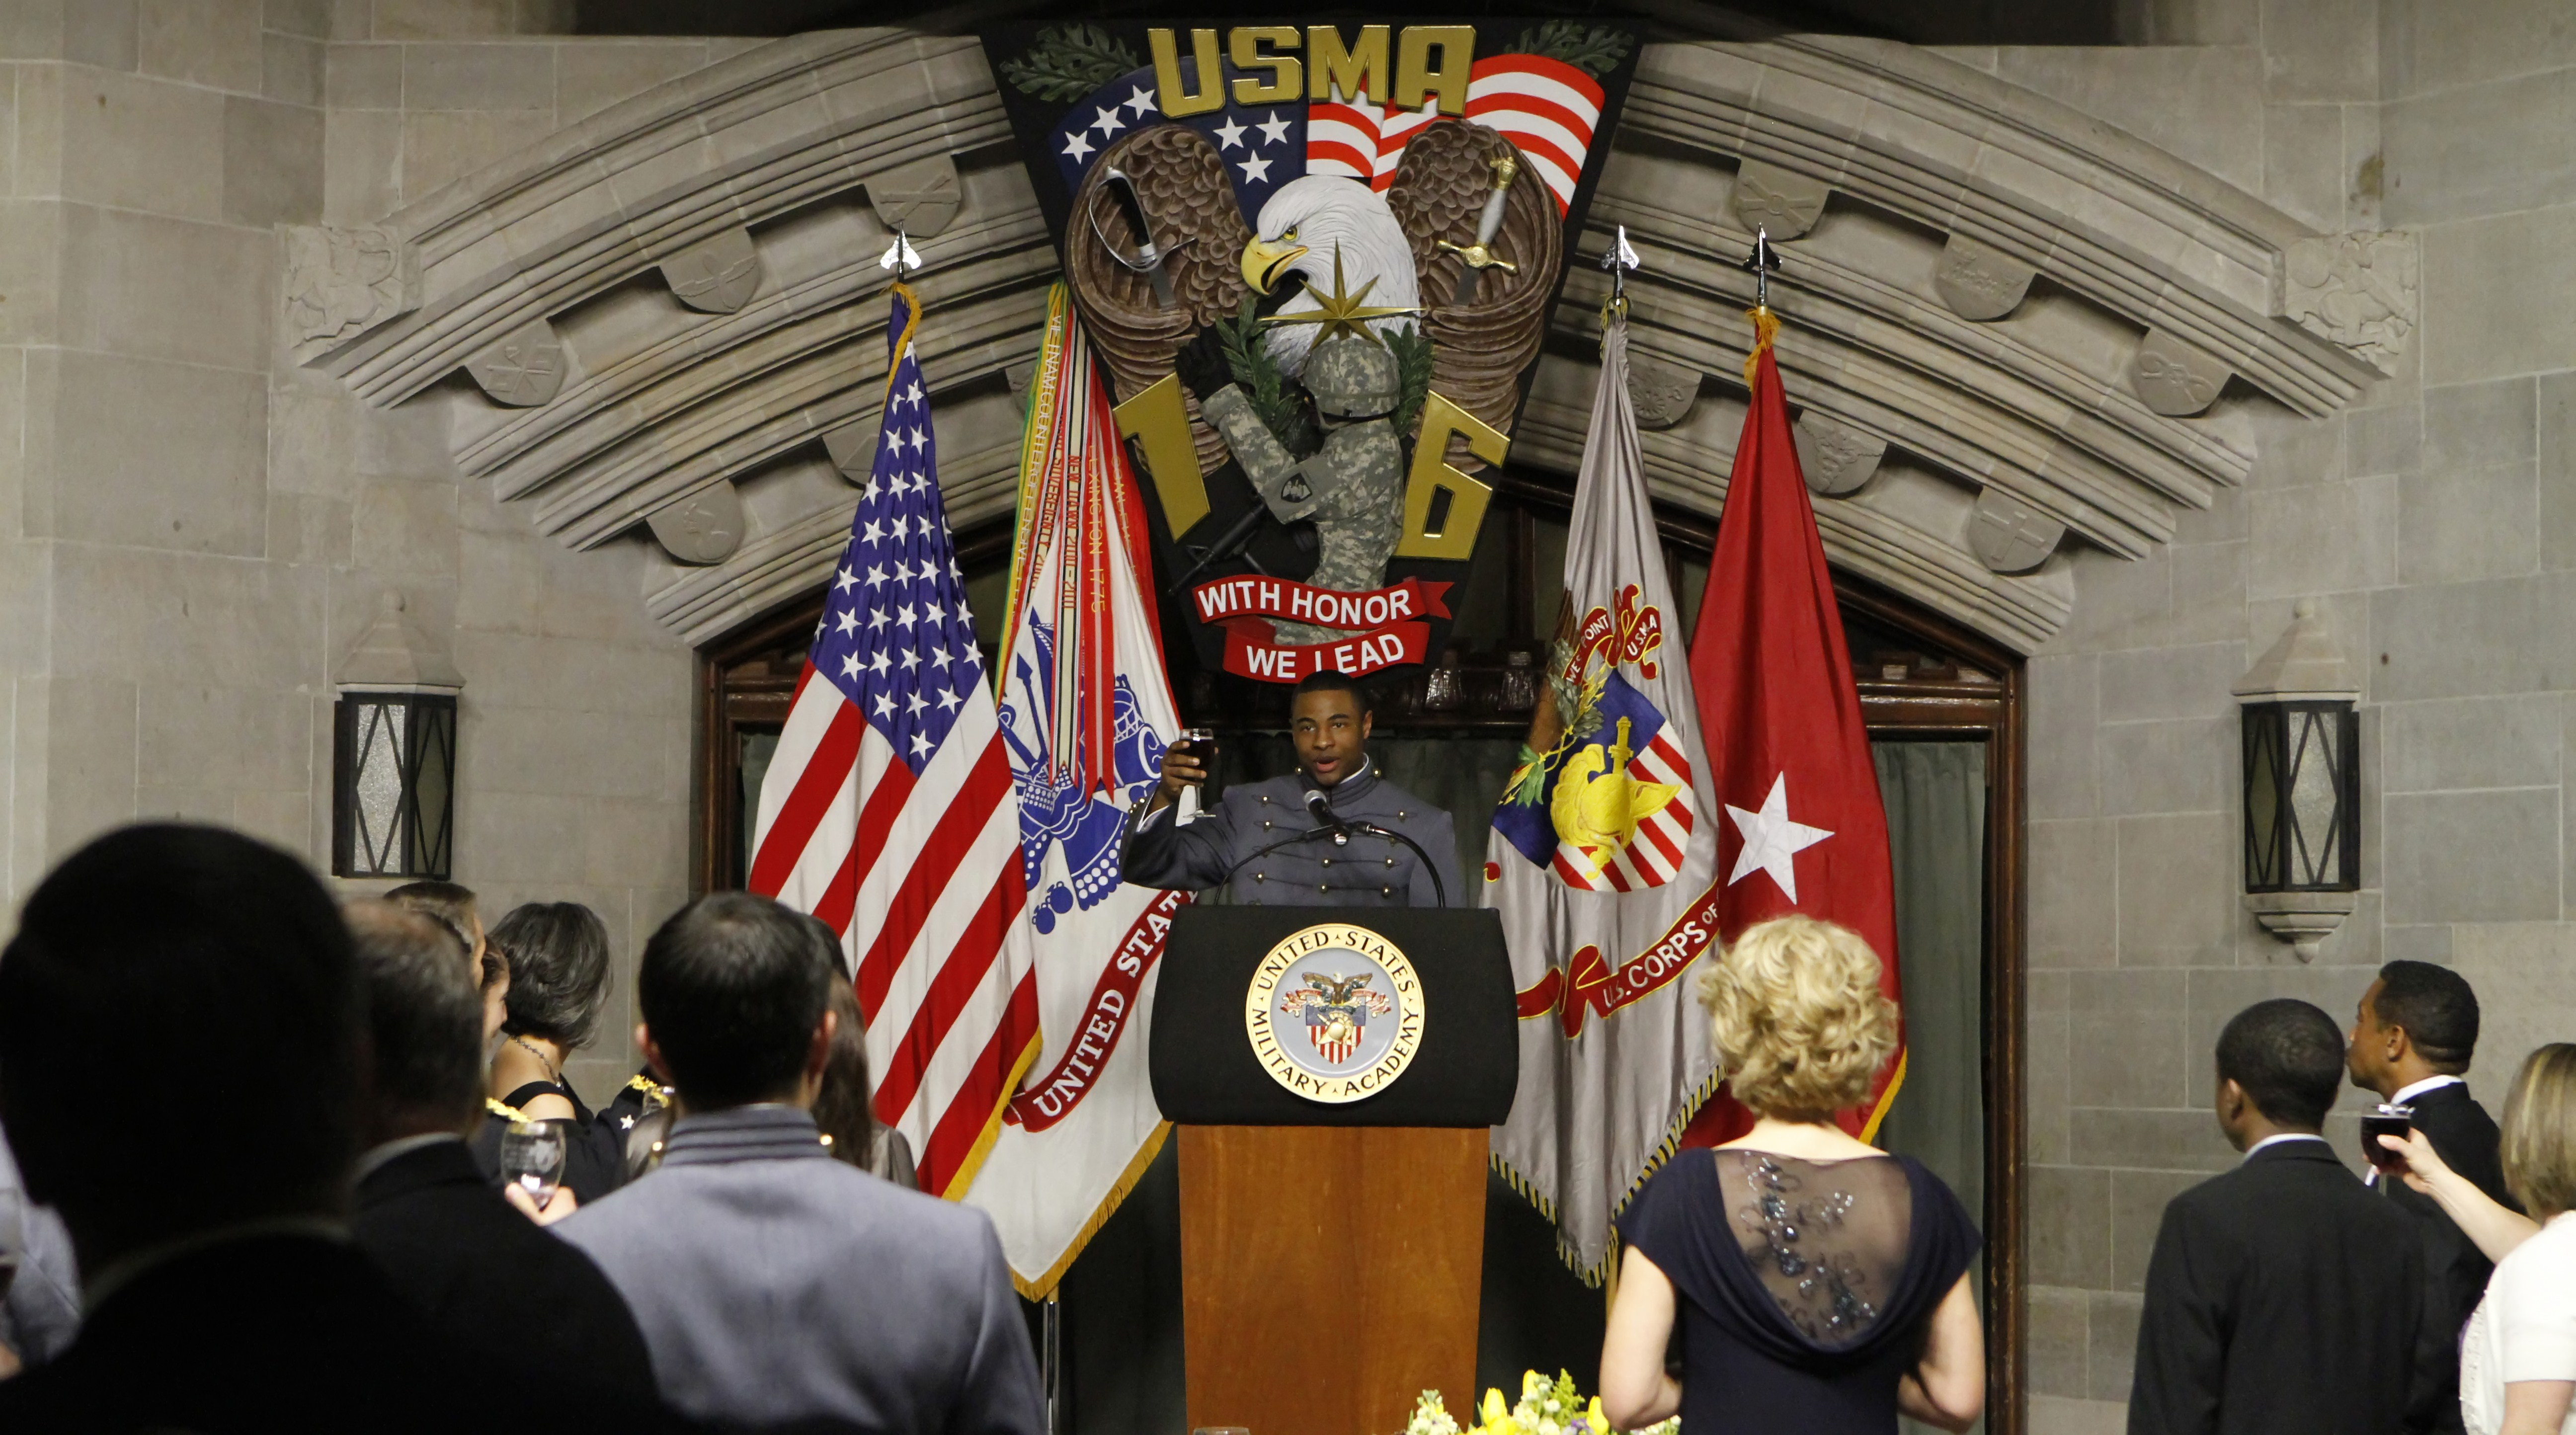 Class of 2016 Cadet Eugene Coleman, class president, delivers the final toast of the night for the Class of 2016at the Plebe-Parent Banquet March 9 at Washington Hall. U.S. Army photo by Mike Strasser/USMA PAO